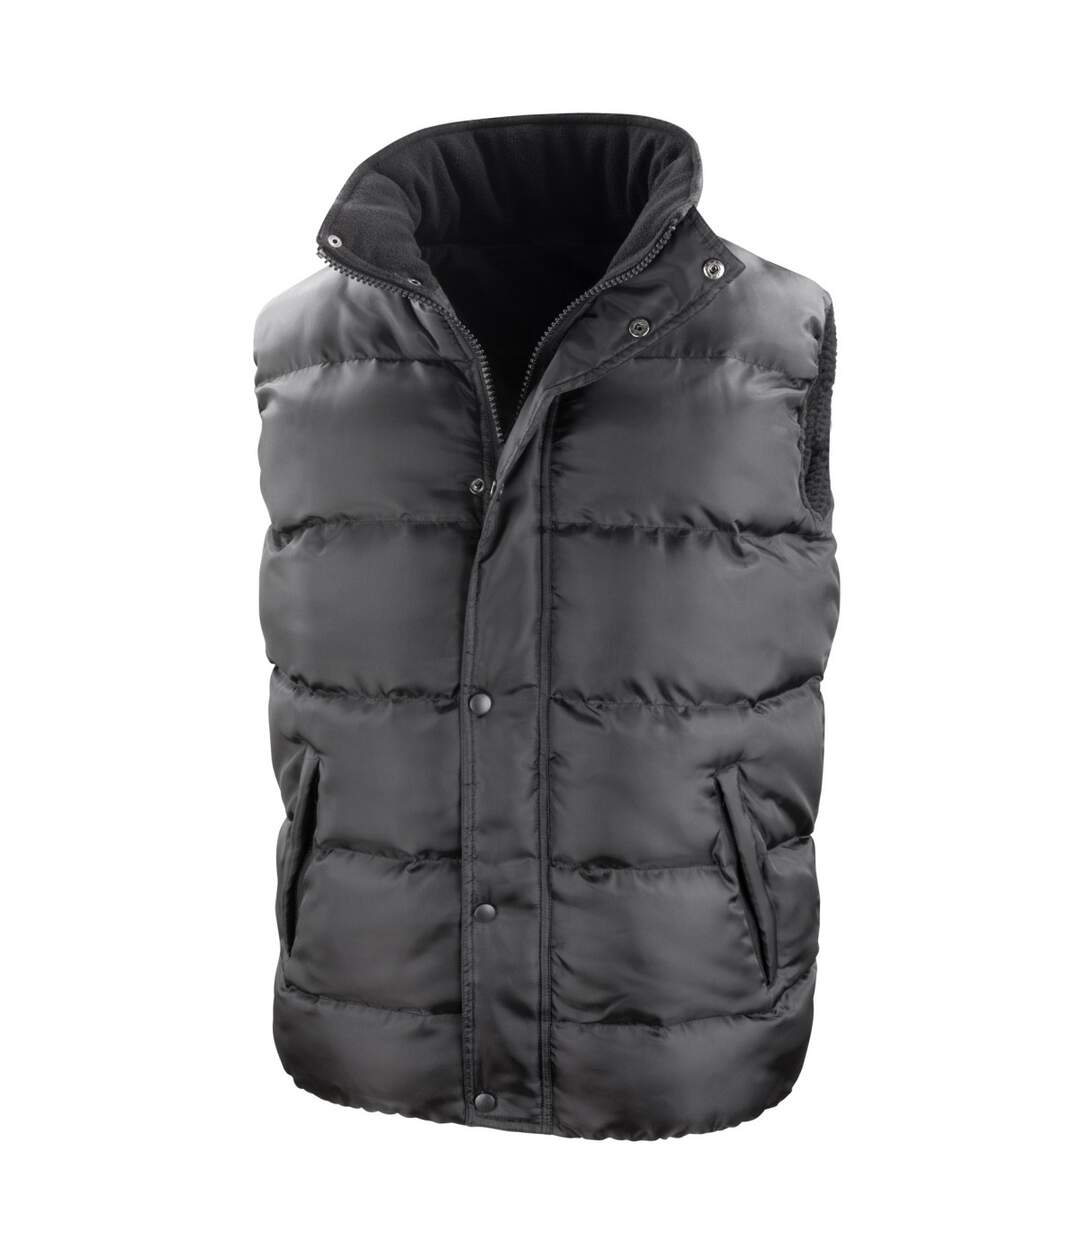 Result Mens Core Nova Lux Padded Fleece Lined Bodywarmer Jacket (Black) - UTBC2051